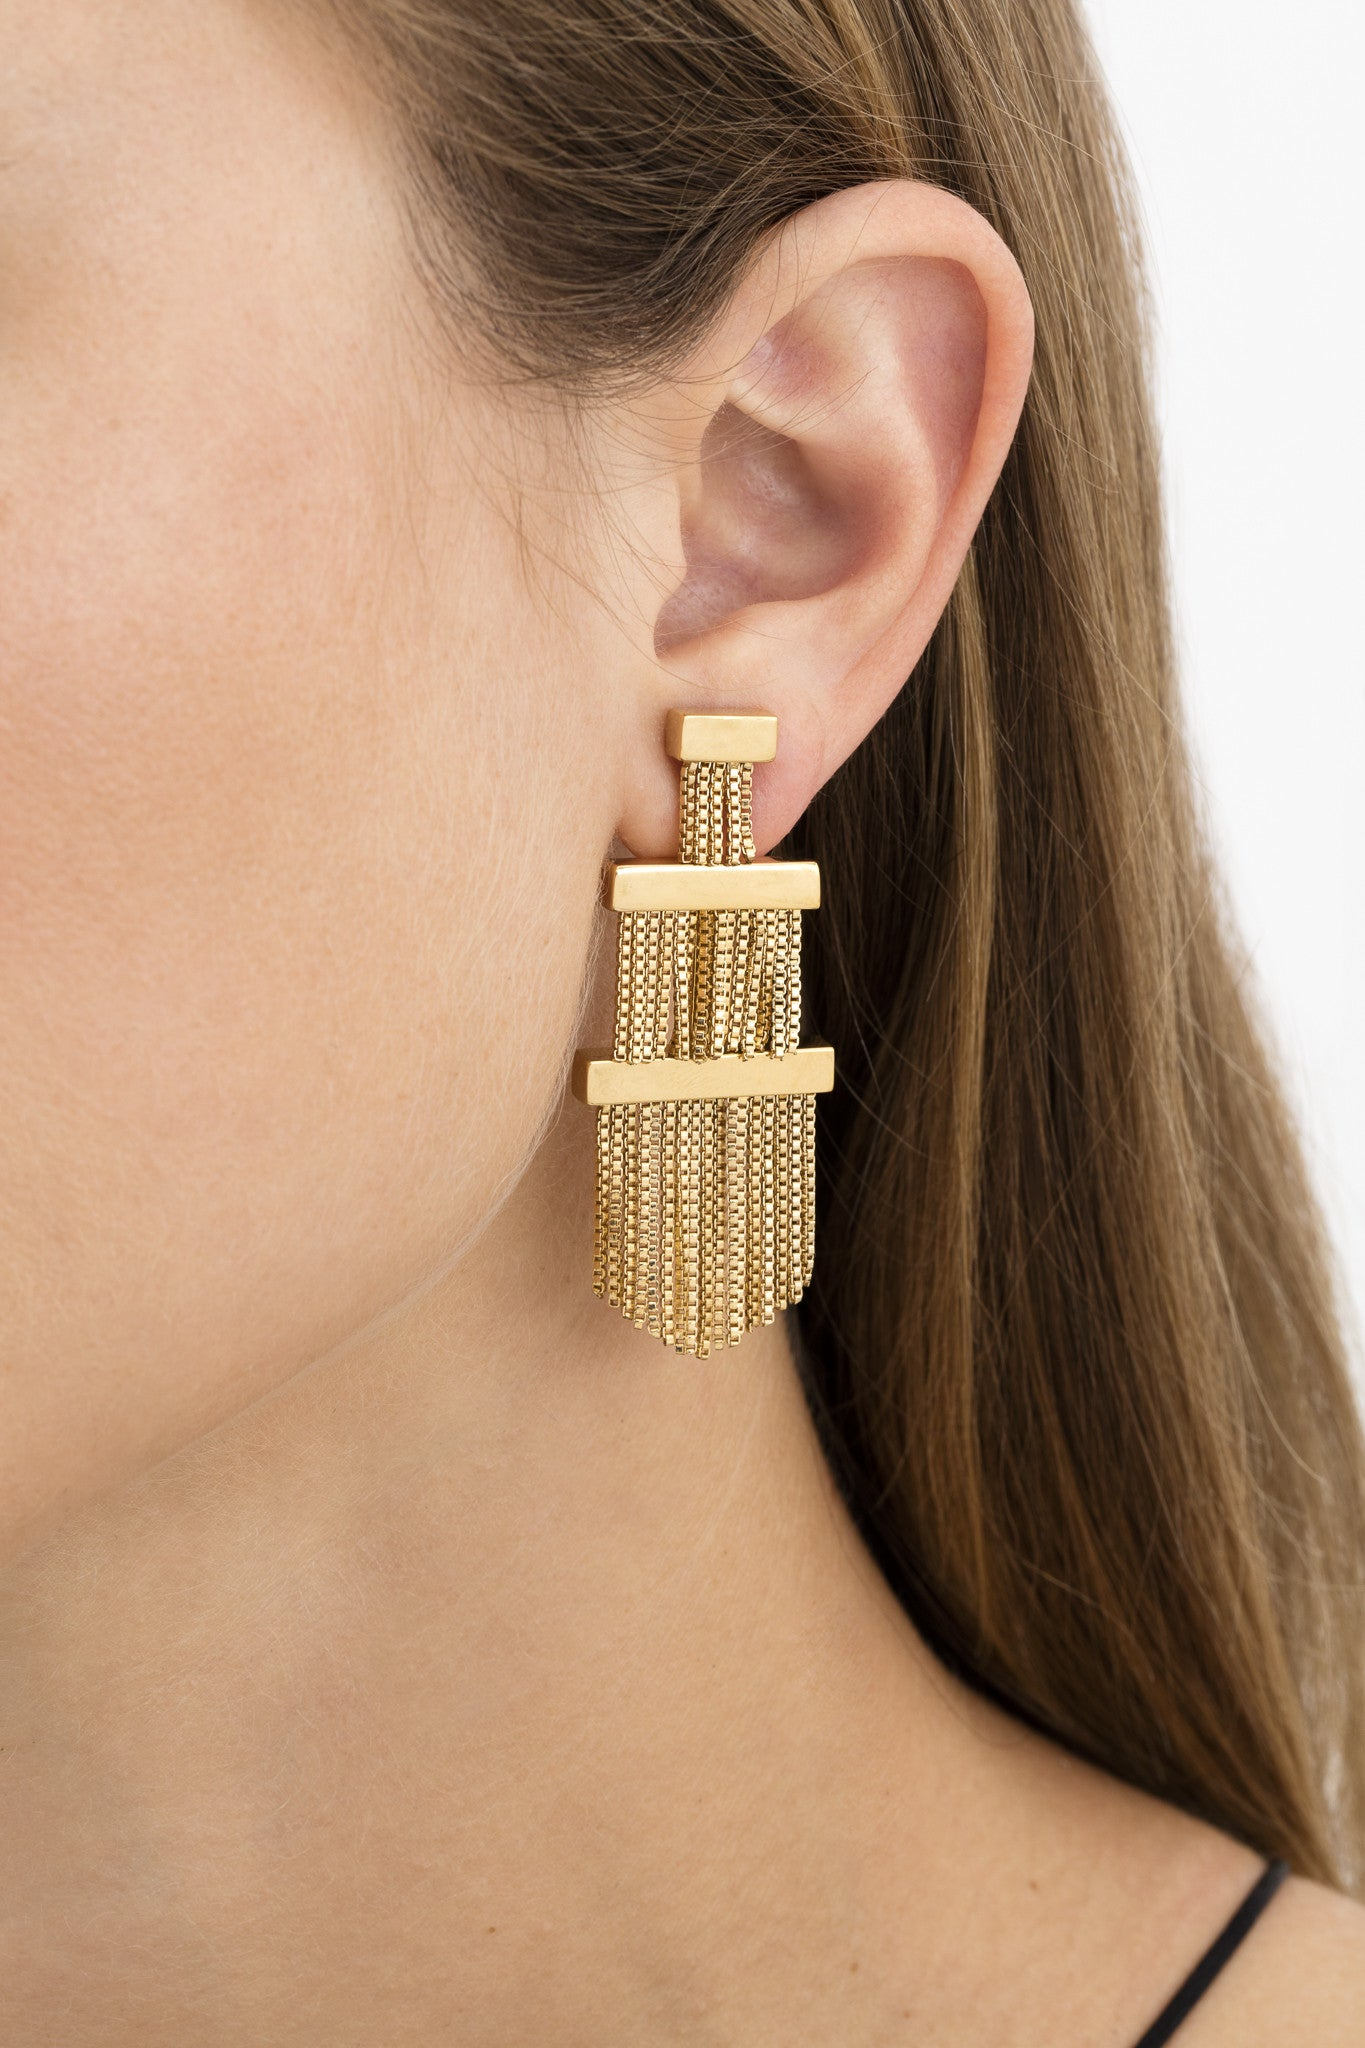 Electric Fringe Earrings by Sarah Magid Jewelry